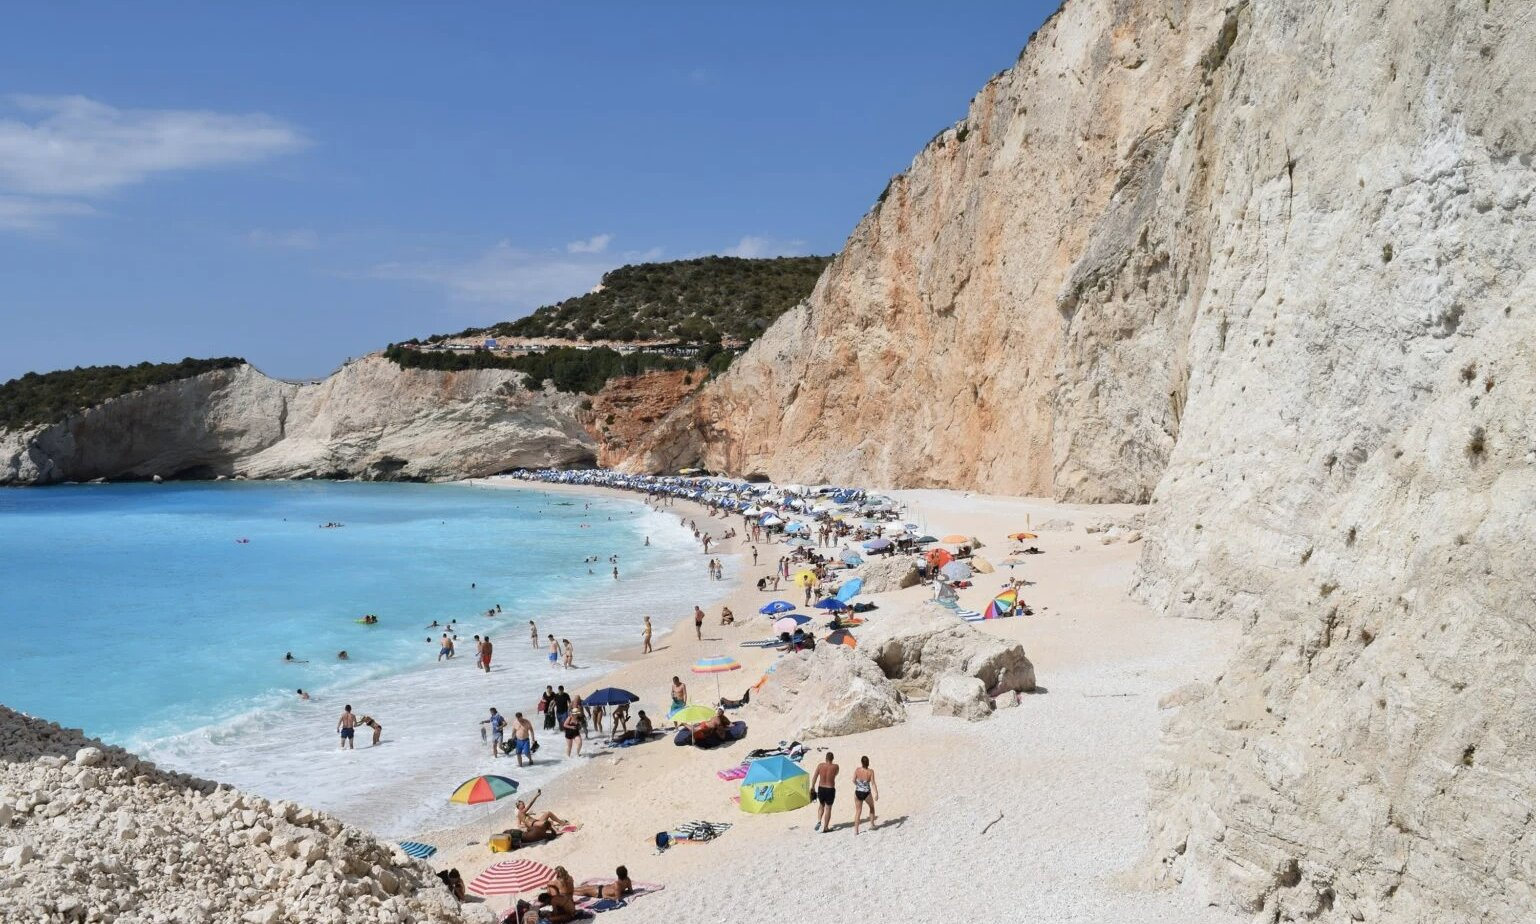 The aim for tourism in Greece is July: But can everybody pack their bags?